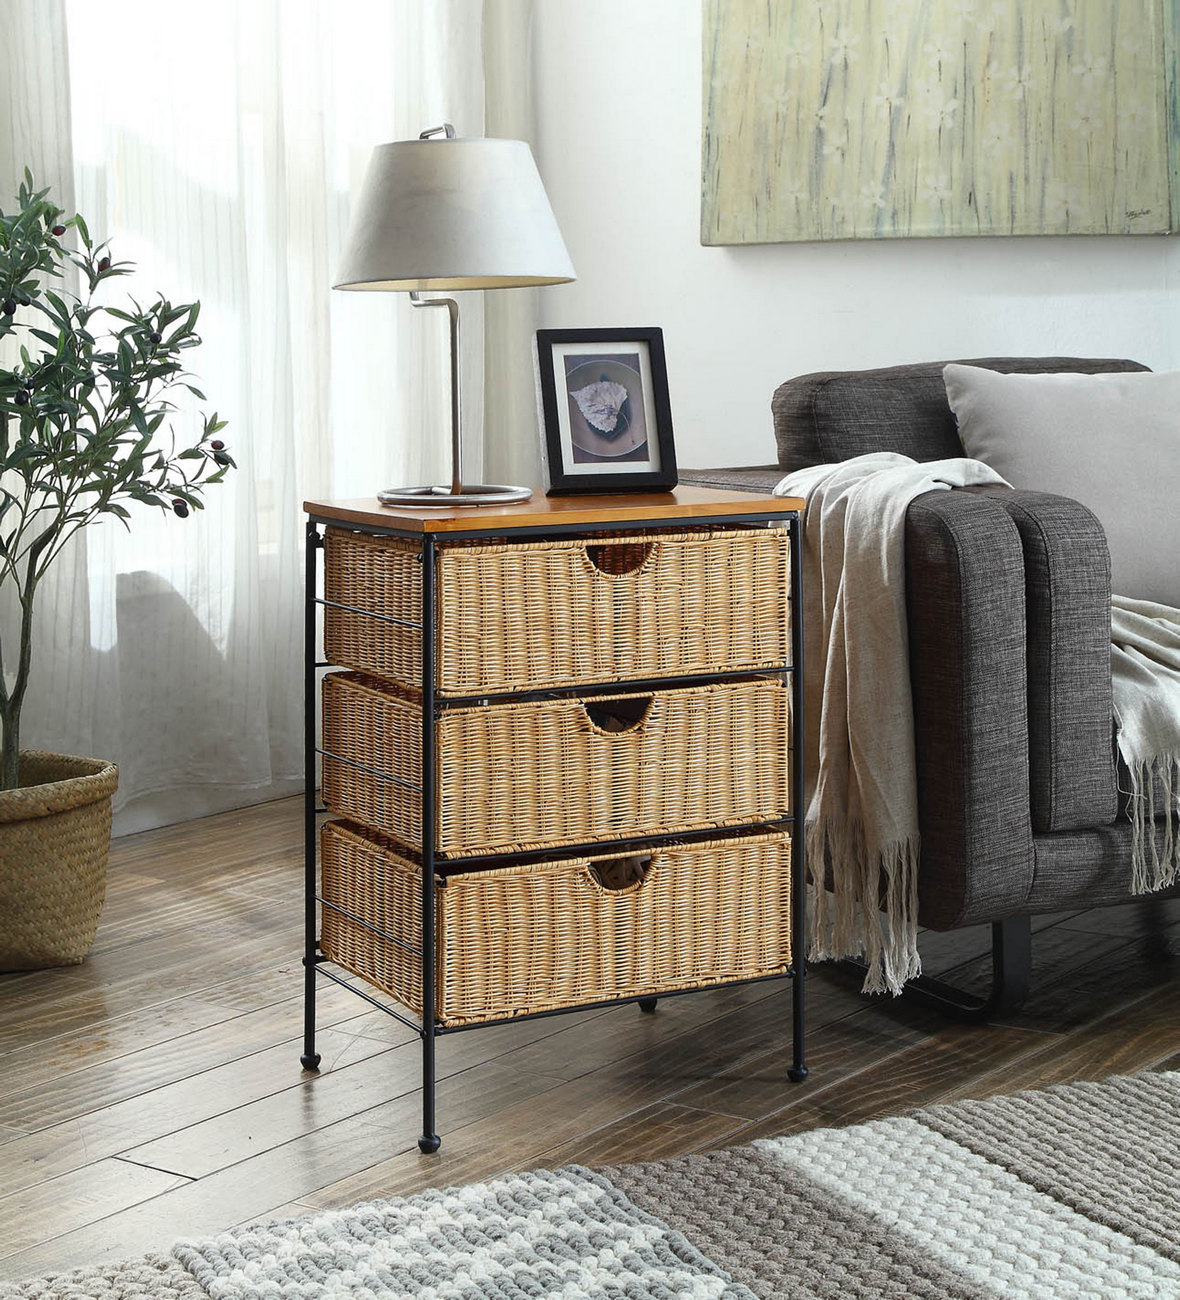 3 Drawer Wicker - 4D Concepts 263069